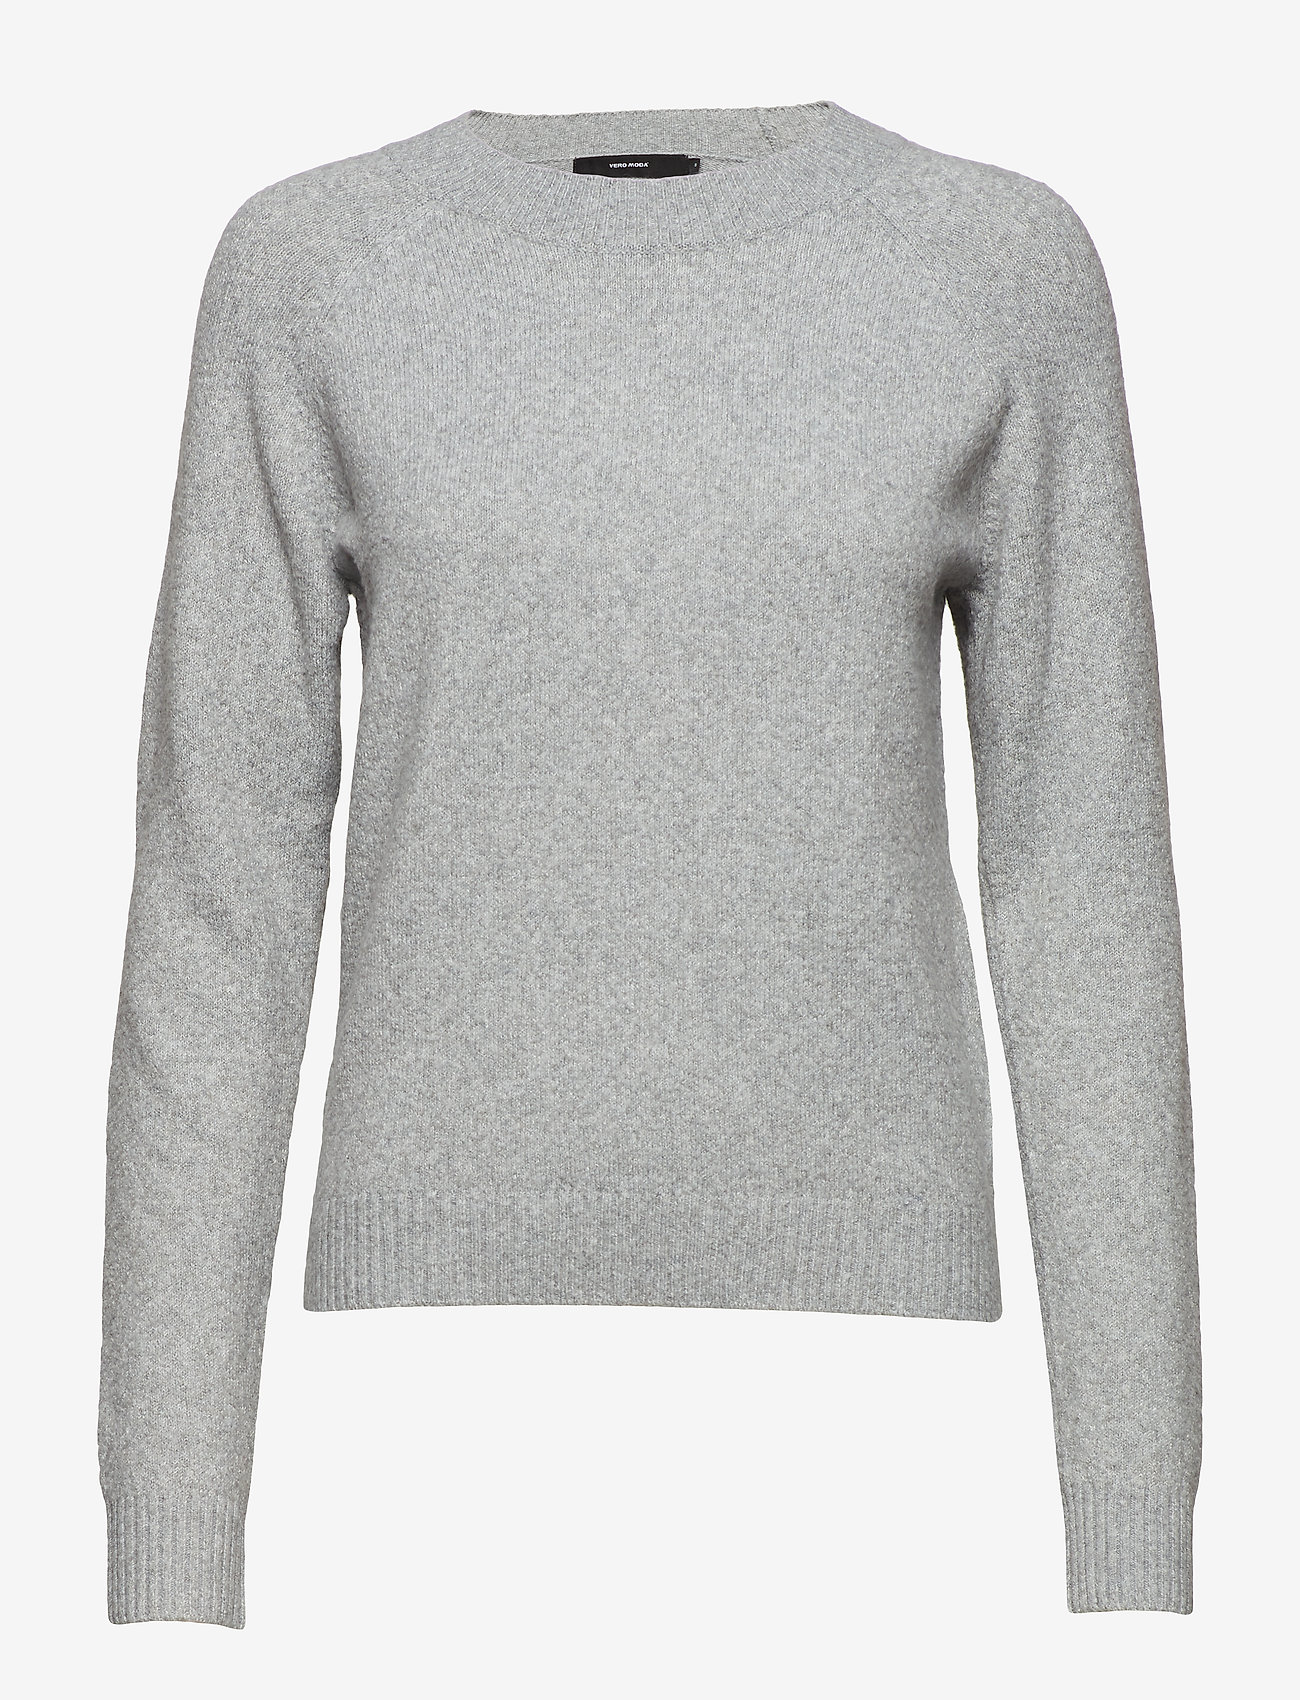 Vero Moda - VMDOFFY LS O-NECK BLOUSE GA - tröjor - light grey melange - 0